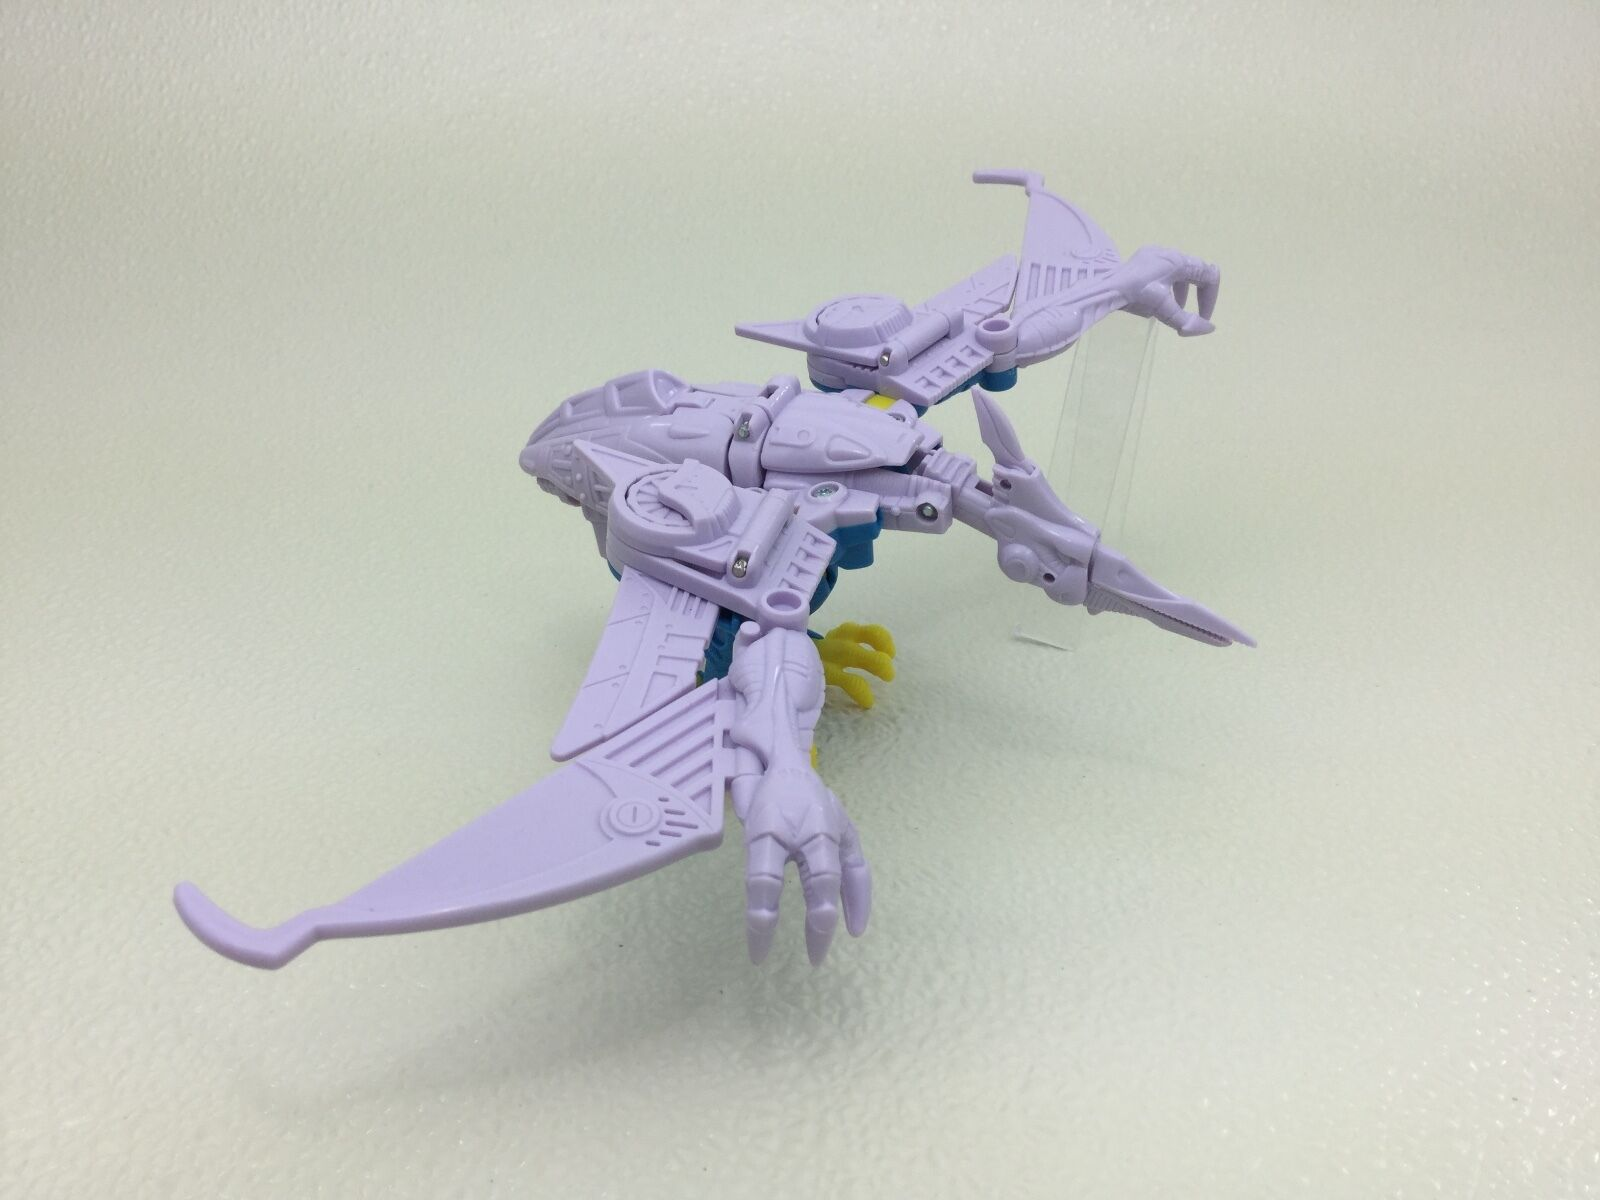 ProugeOTYPE Transformers Beast  Wars TERRORSAUR Transmetal  magasin d'offre